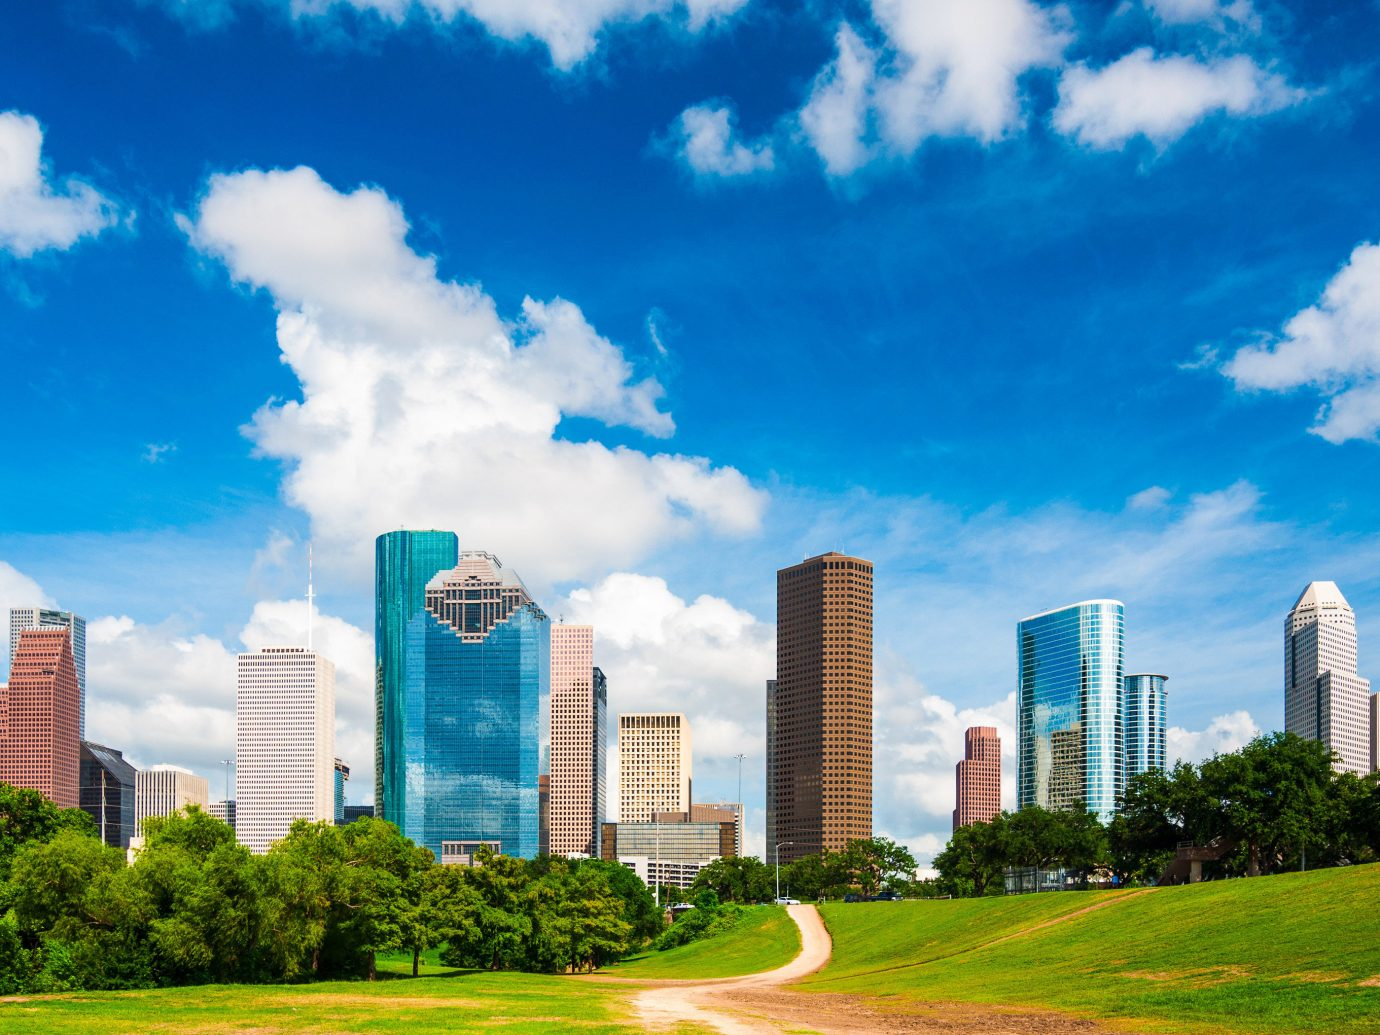 Houston Outdoors + Adventure Texas Trip Ideas metropolitan area sky daytime skyline landmark cloud skyscraper City urban area cityscape metropolis tower block grass residential area horizon Downtown corporate headquarters meadow condominium tree real estate building landscape computer wallpaper cumulus meteorological phenomenon energy suburb